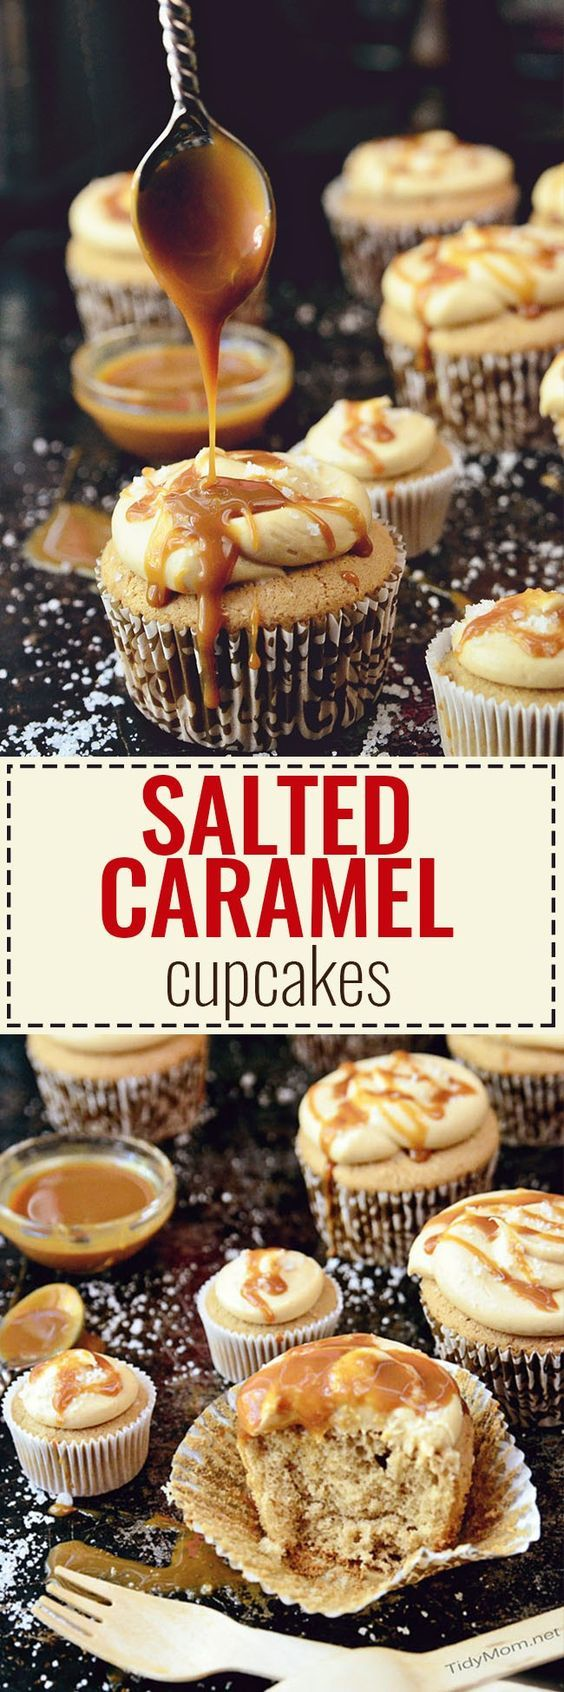 These CARAMEL CUPCAKES are topped with salted dulce de leche caramel frosting…